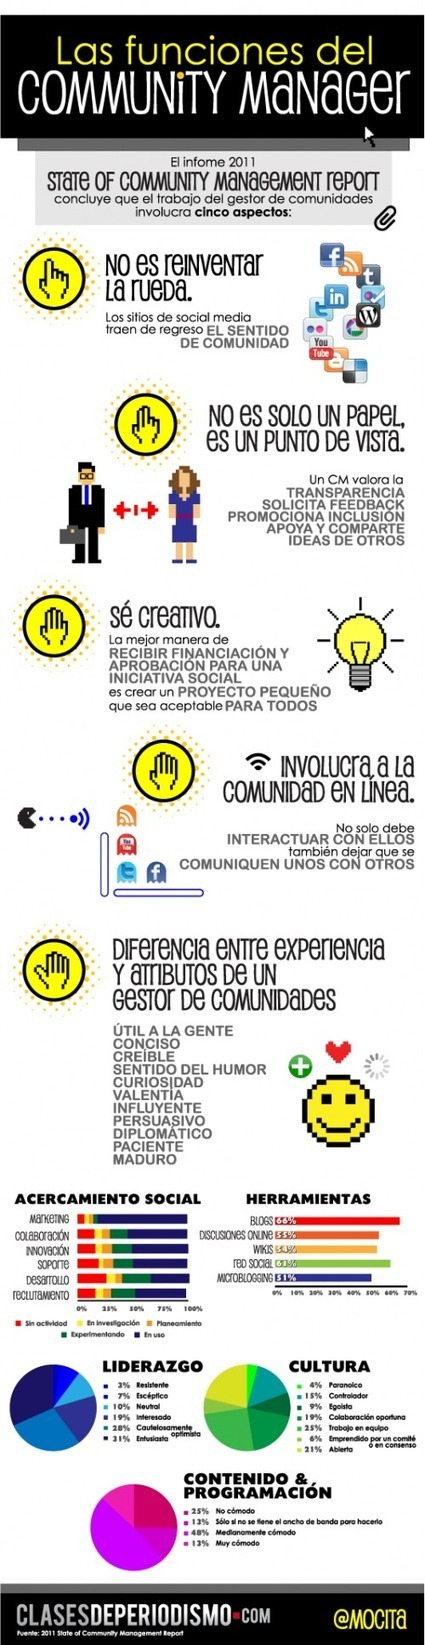 Las 5 funciones básicas del Community Manager | Redes Sociales | FORMACION EN COMMUNITY MANAGER | Scoop.it